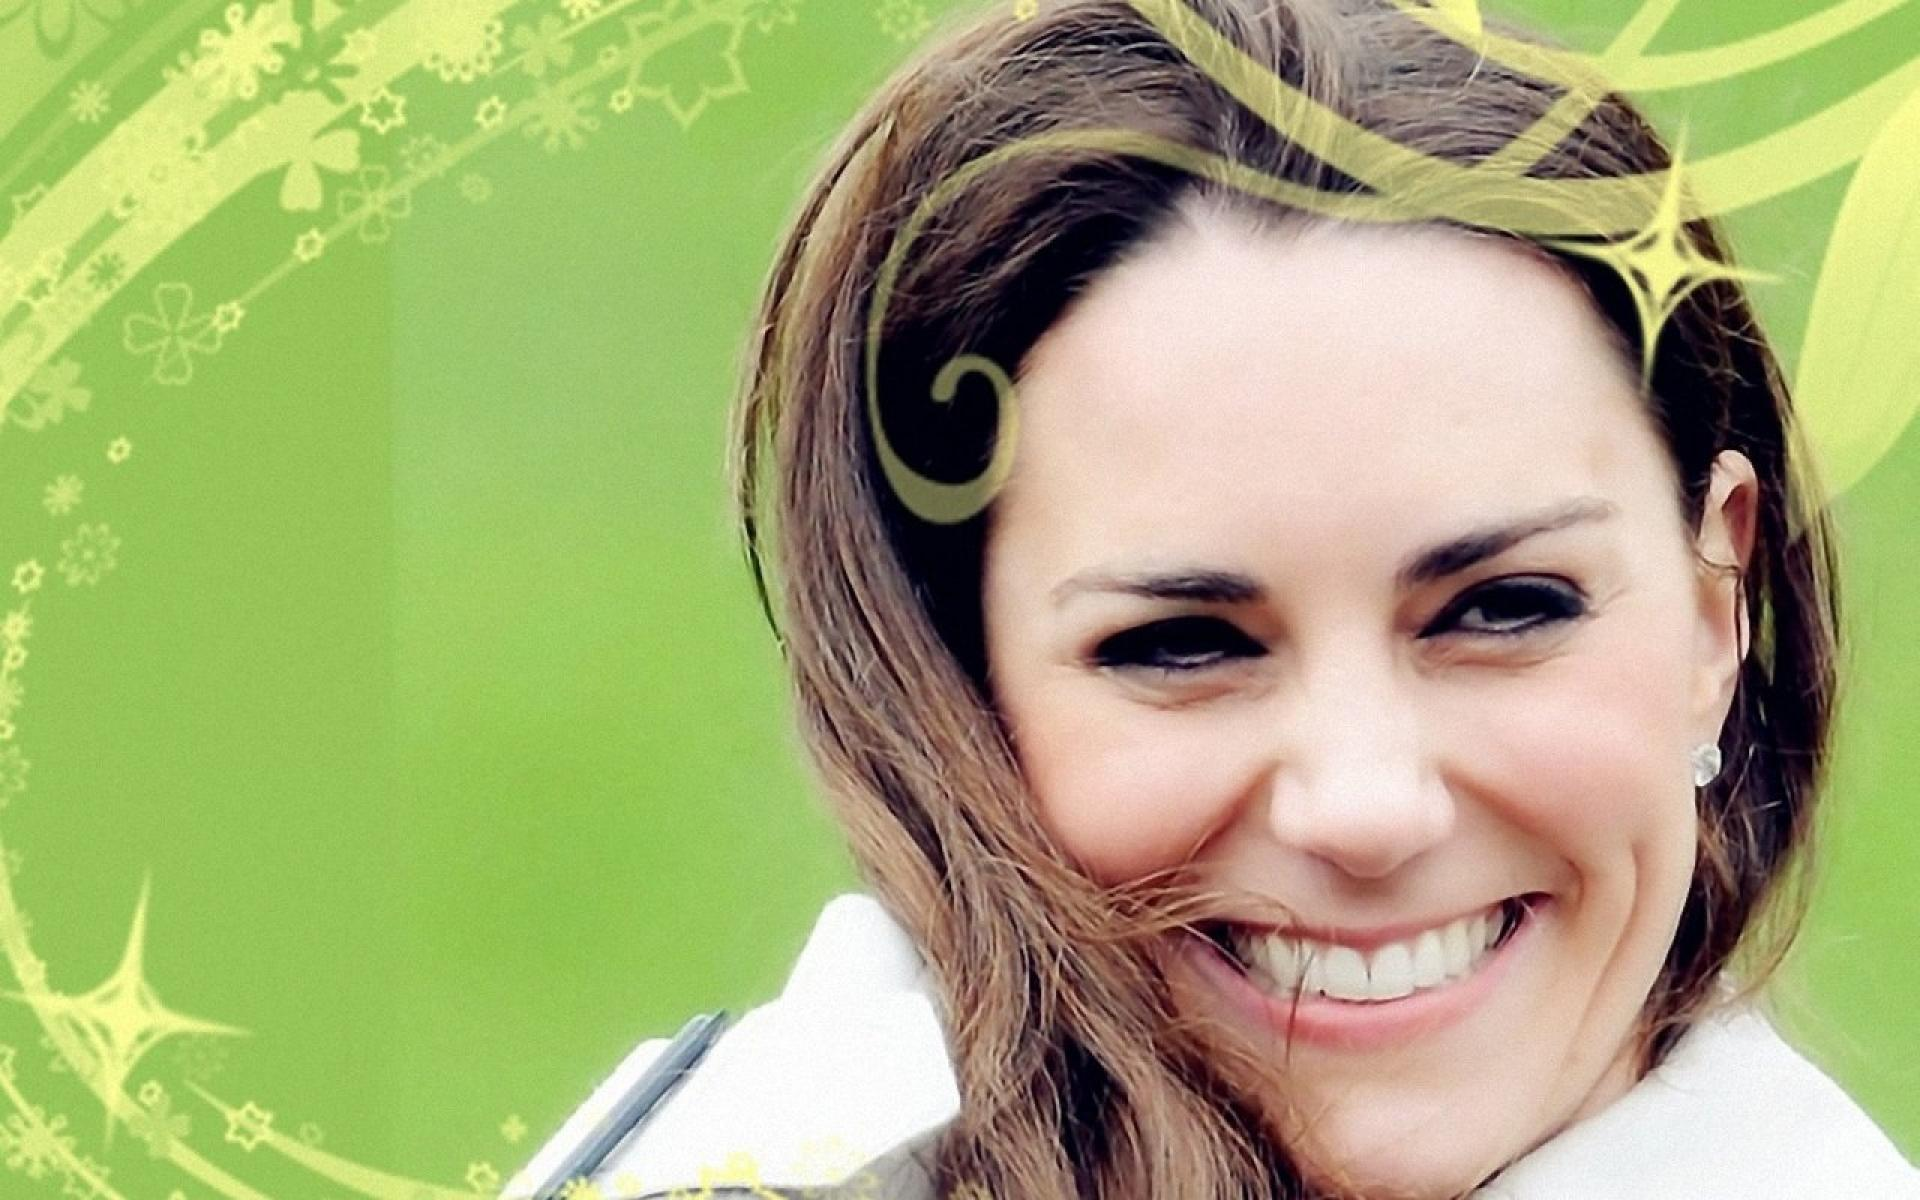 Catherine Elizabeth Middleton Wallpaper 11   1920 X 1200 stmednet 1920x1200